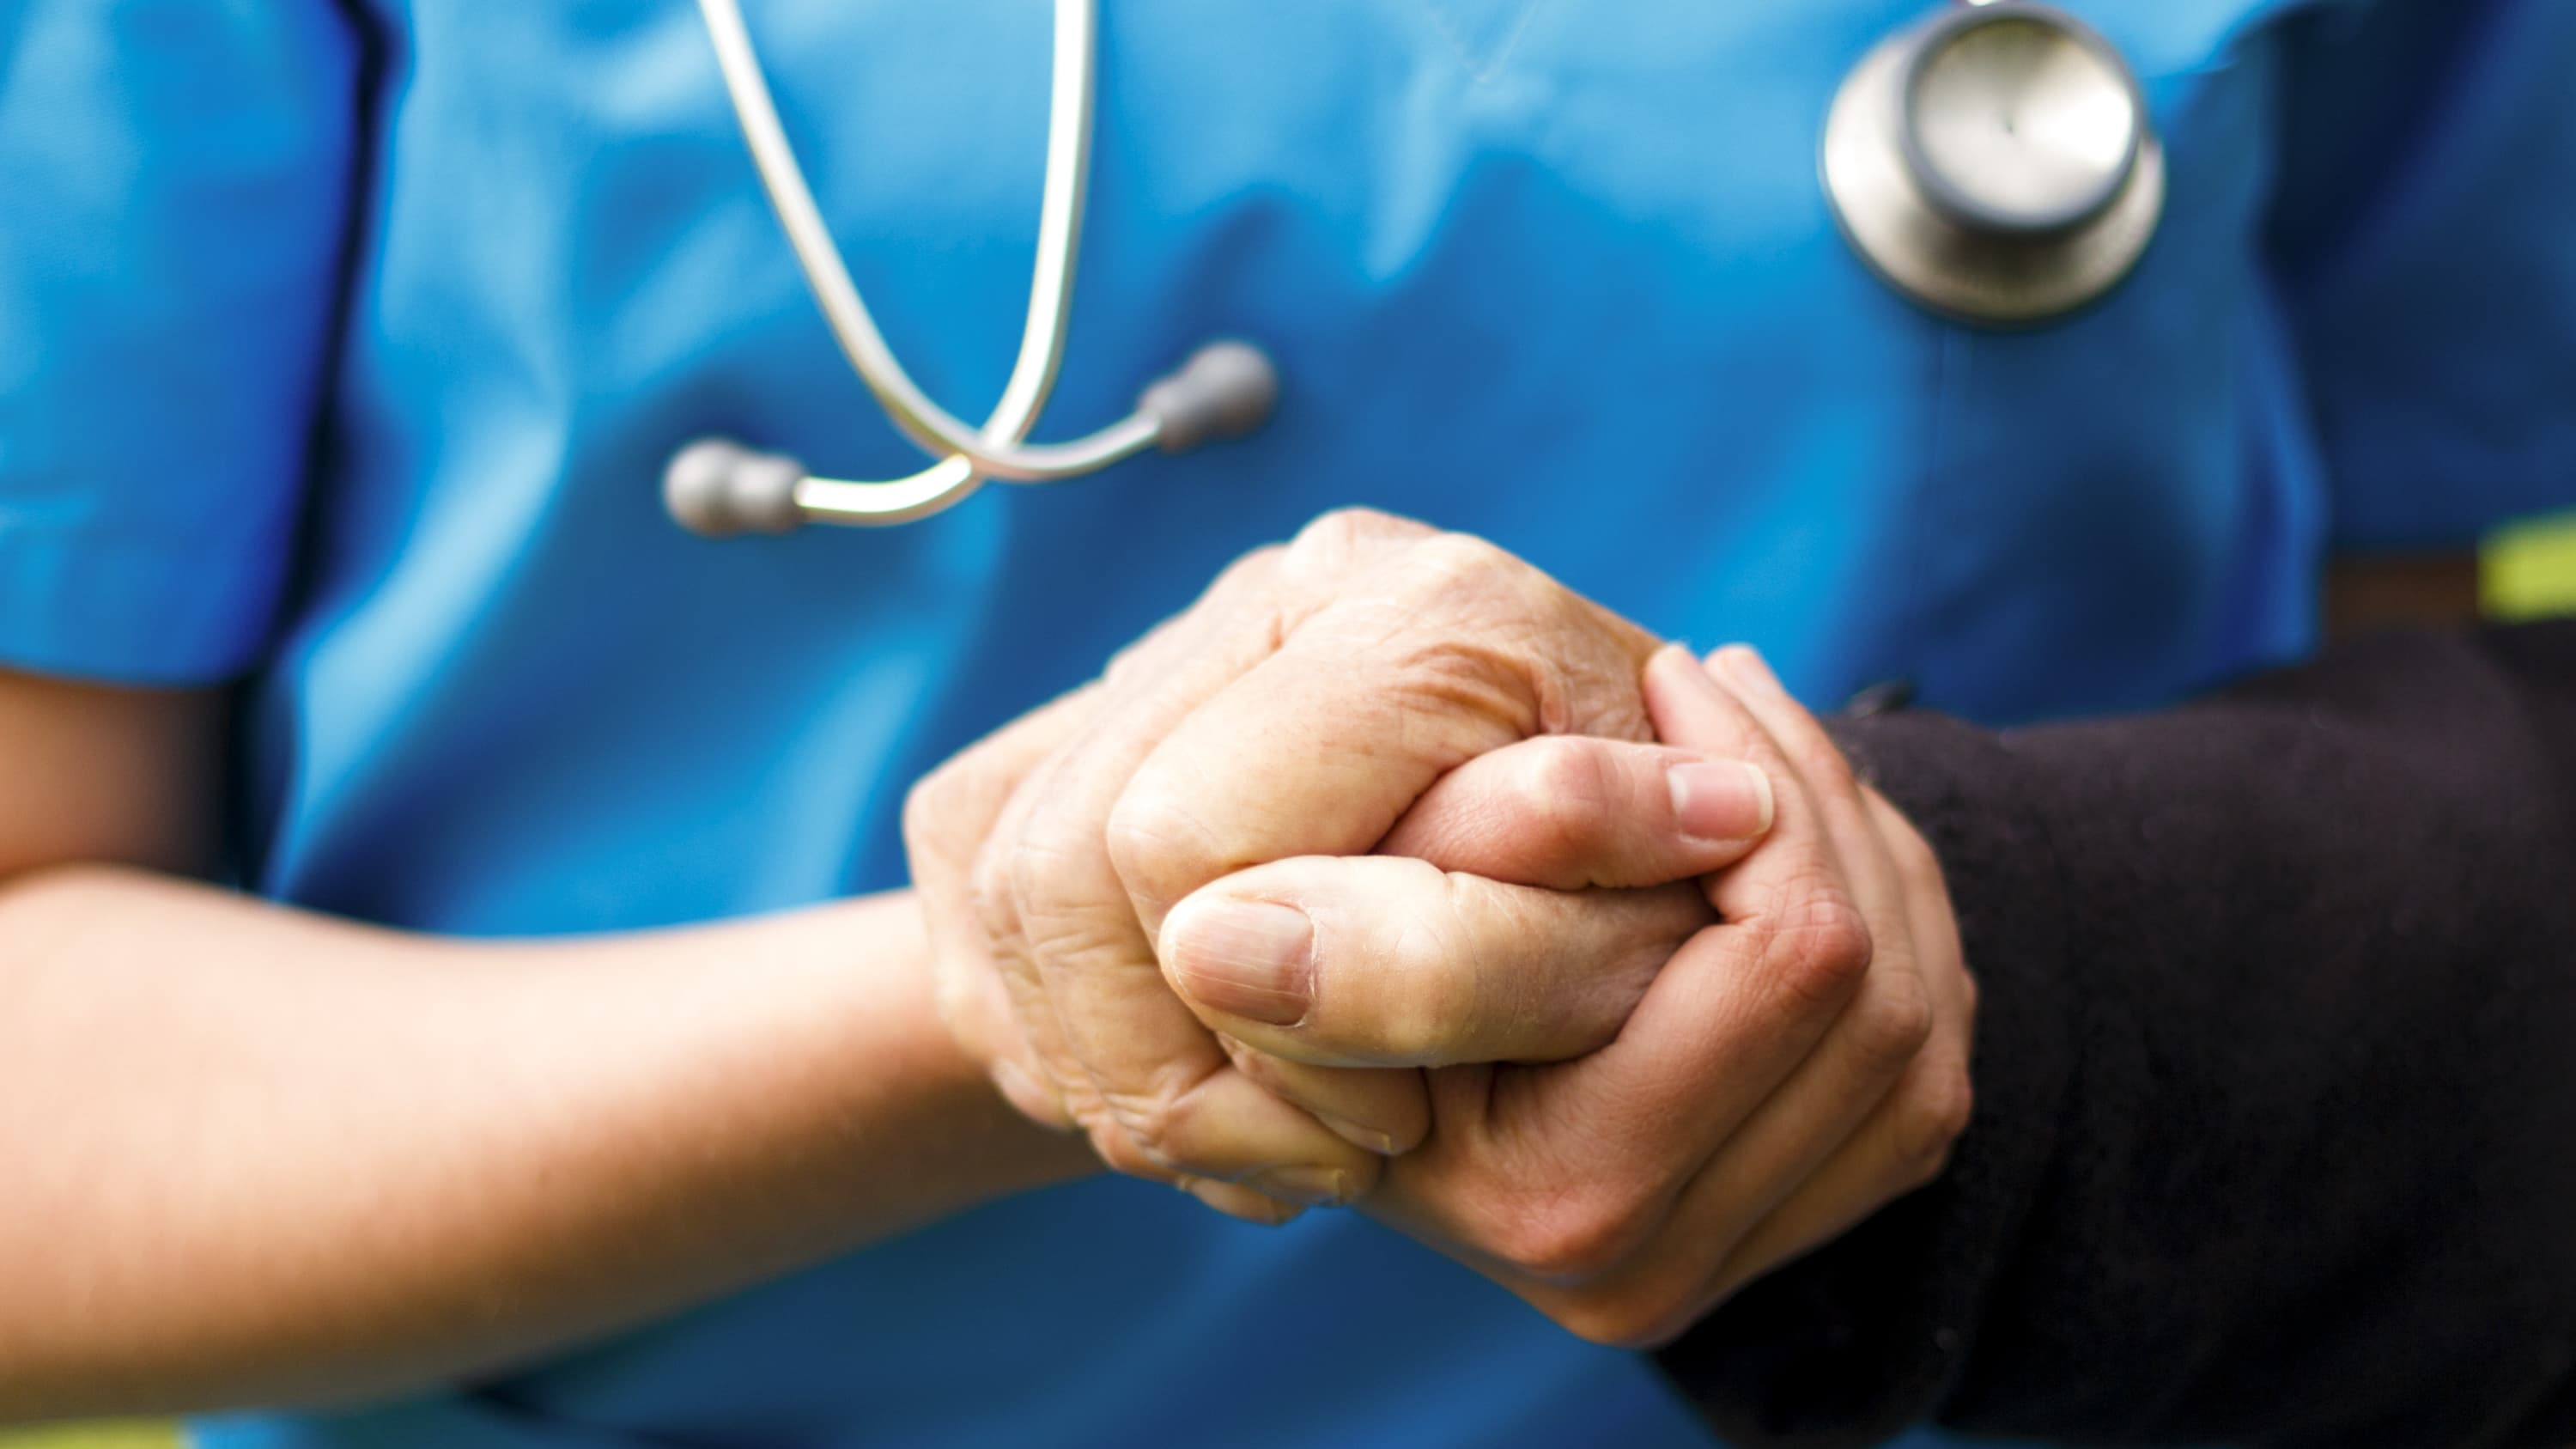 A doctor holds the hand of a patient with Parkinson's